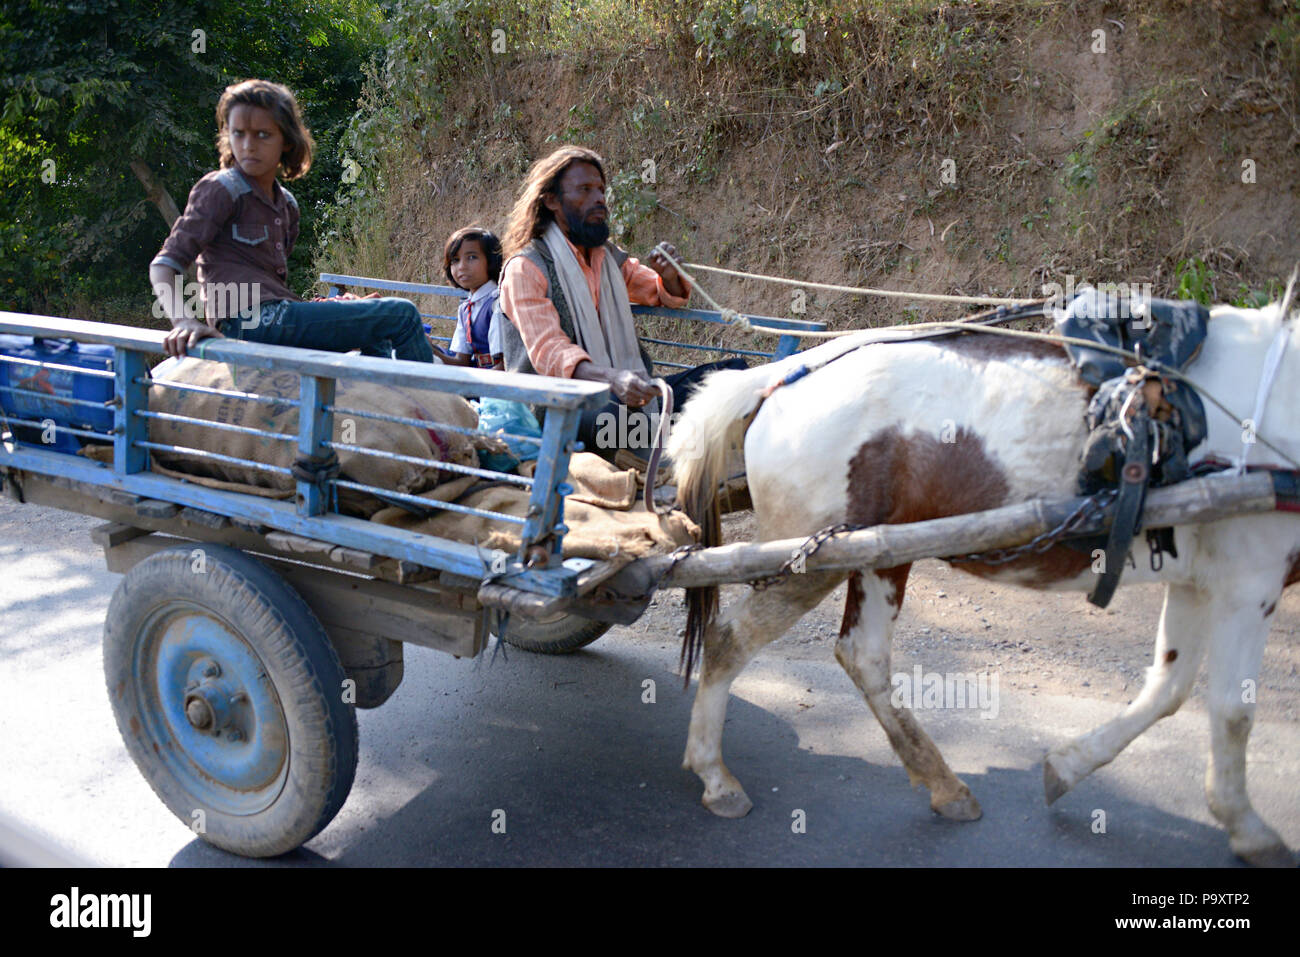 Lifestyle street scenes from a moving car, travelling from Jaipur to Bandhavgarh National Park, India - Stock Image